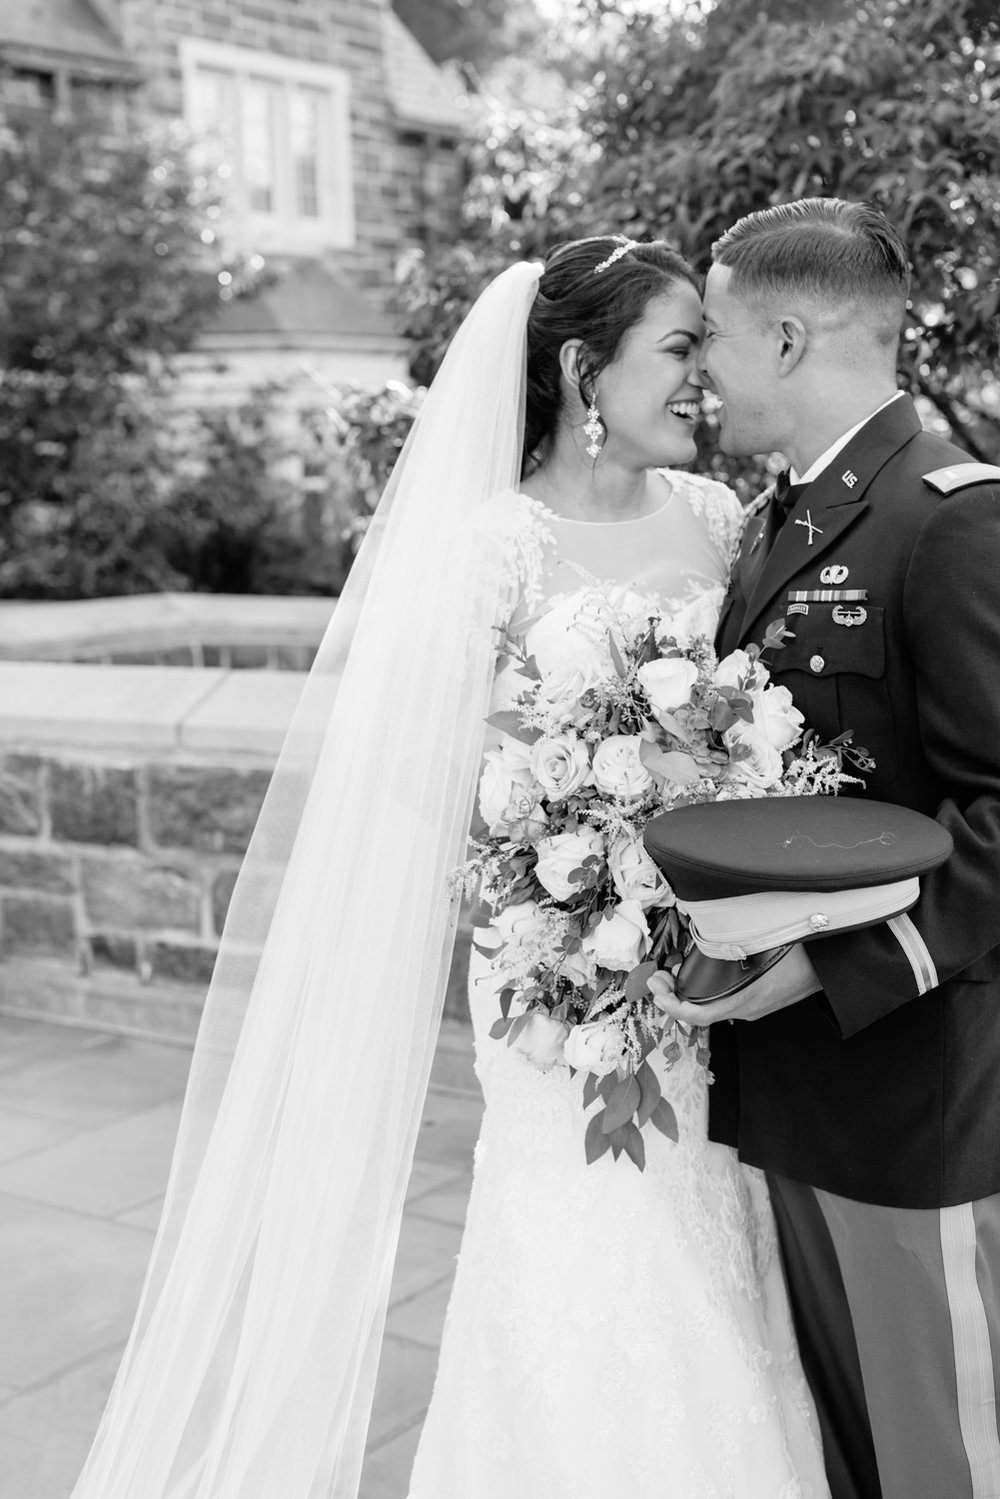 West Point Wedding- Mari + Dalton- New Jersey New York Wedding Photographer Olivia Christina Photo-152.jpg